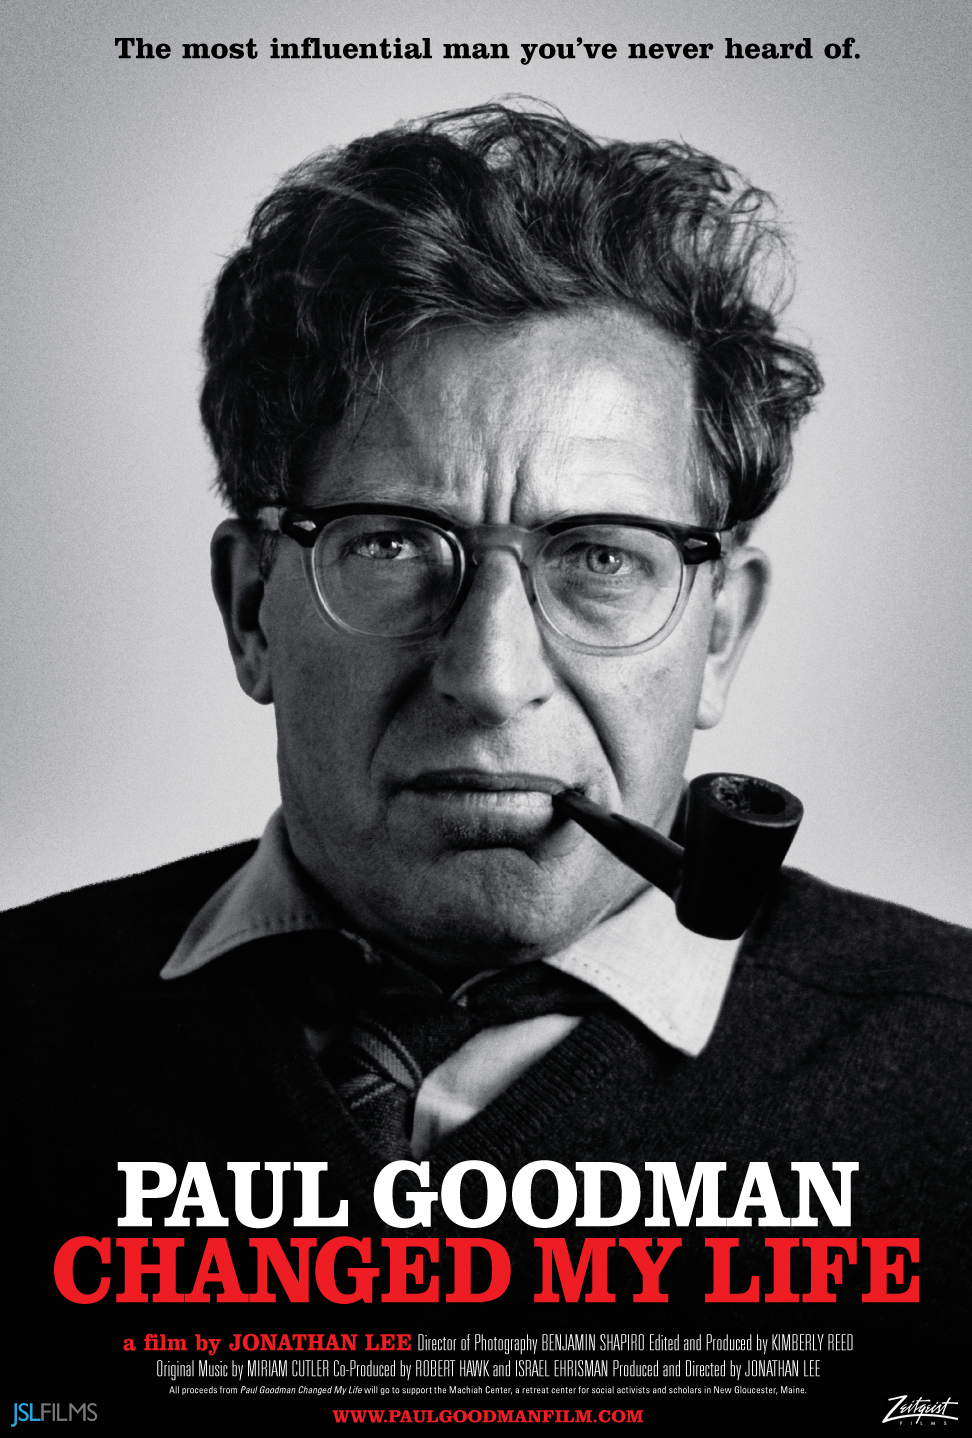 Paul_Goodman_Changed_My_Life_poster.jpg